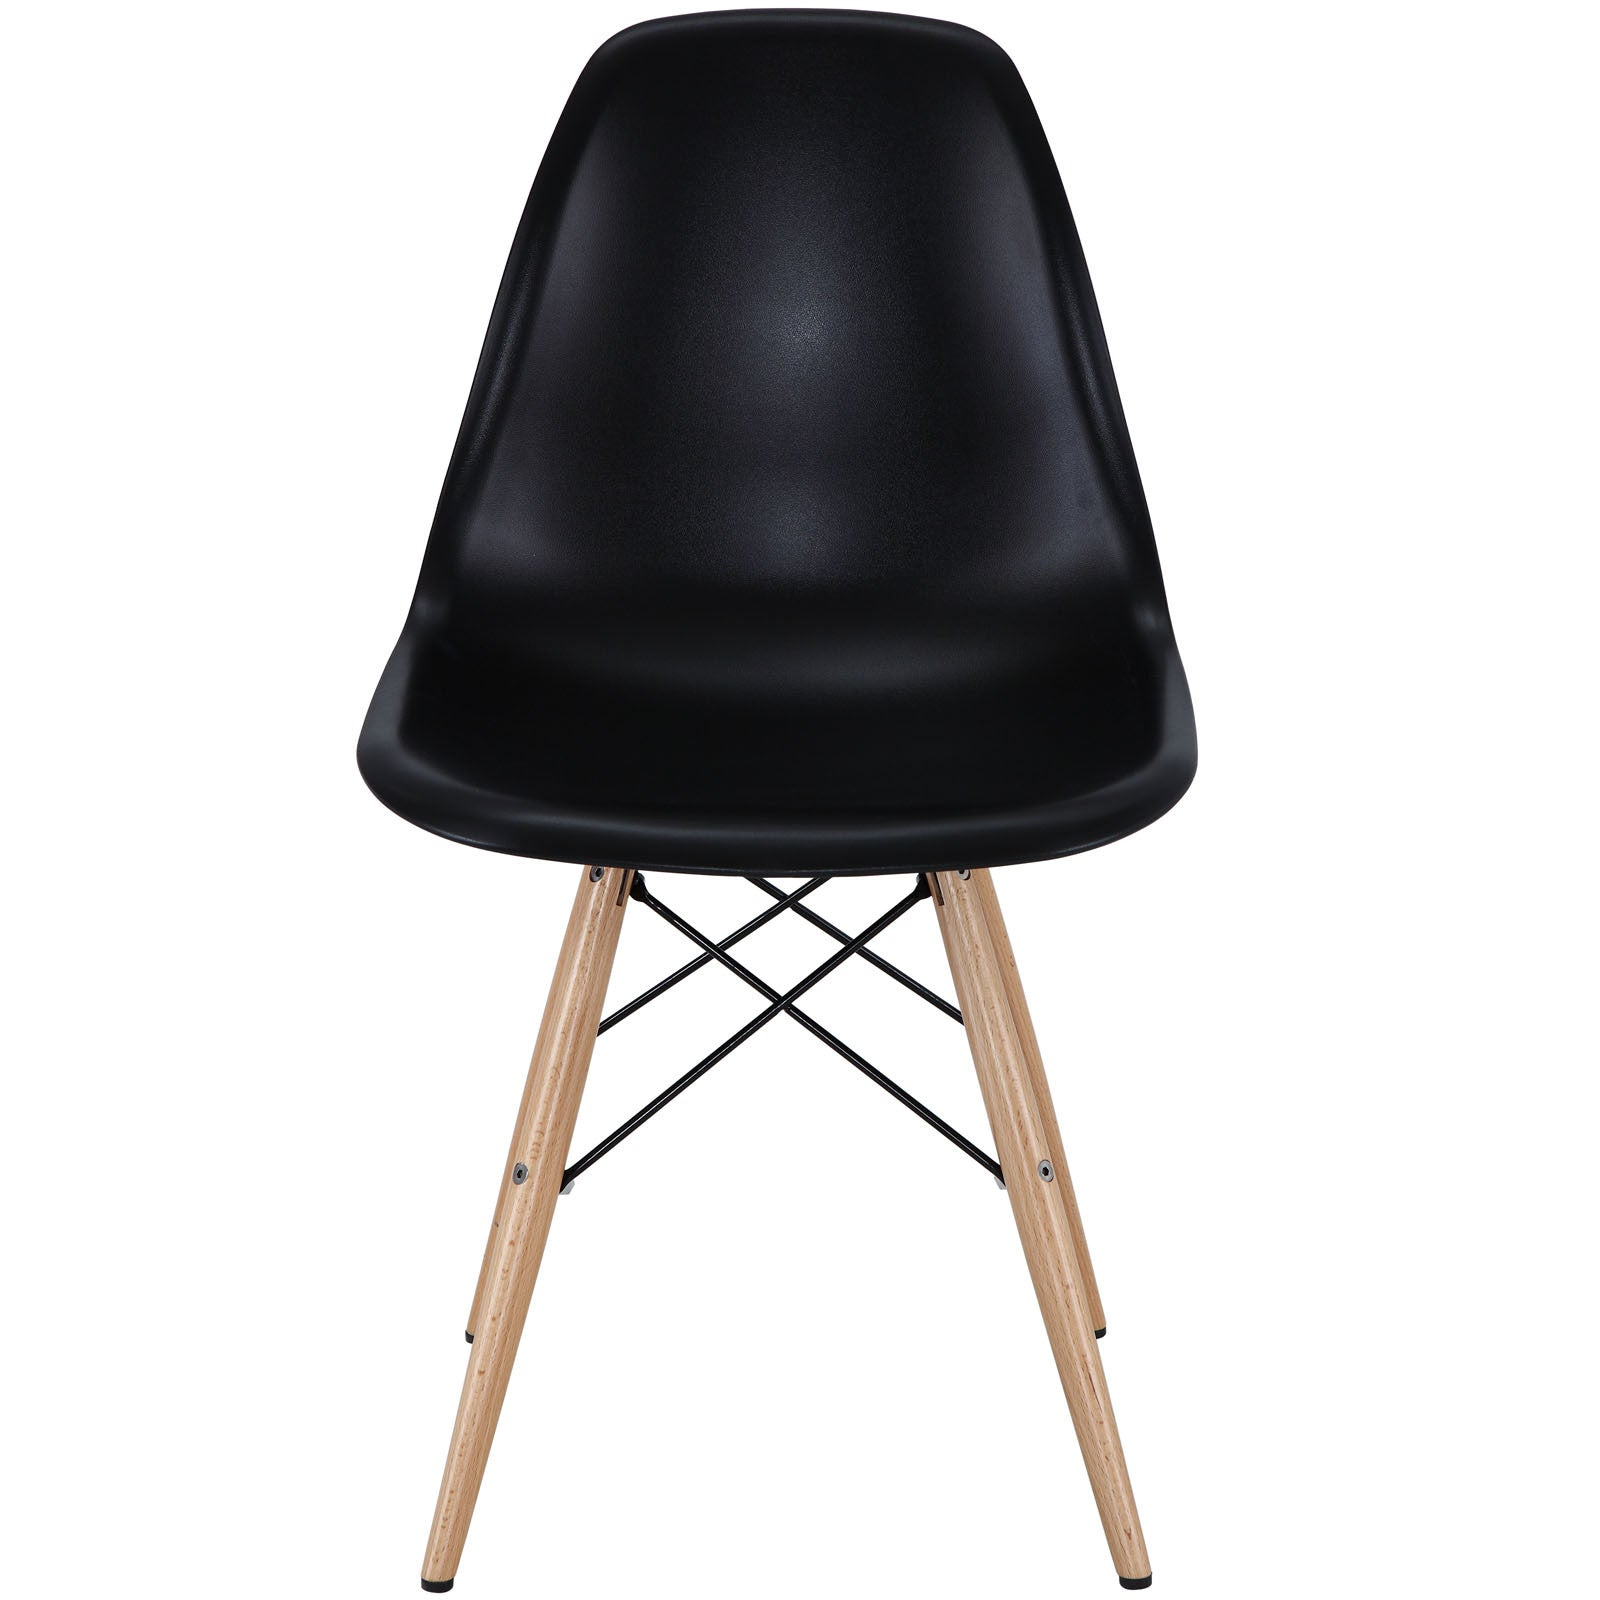 emfurn style daw dining side chair emfurn 1